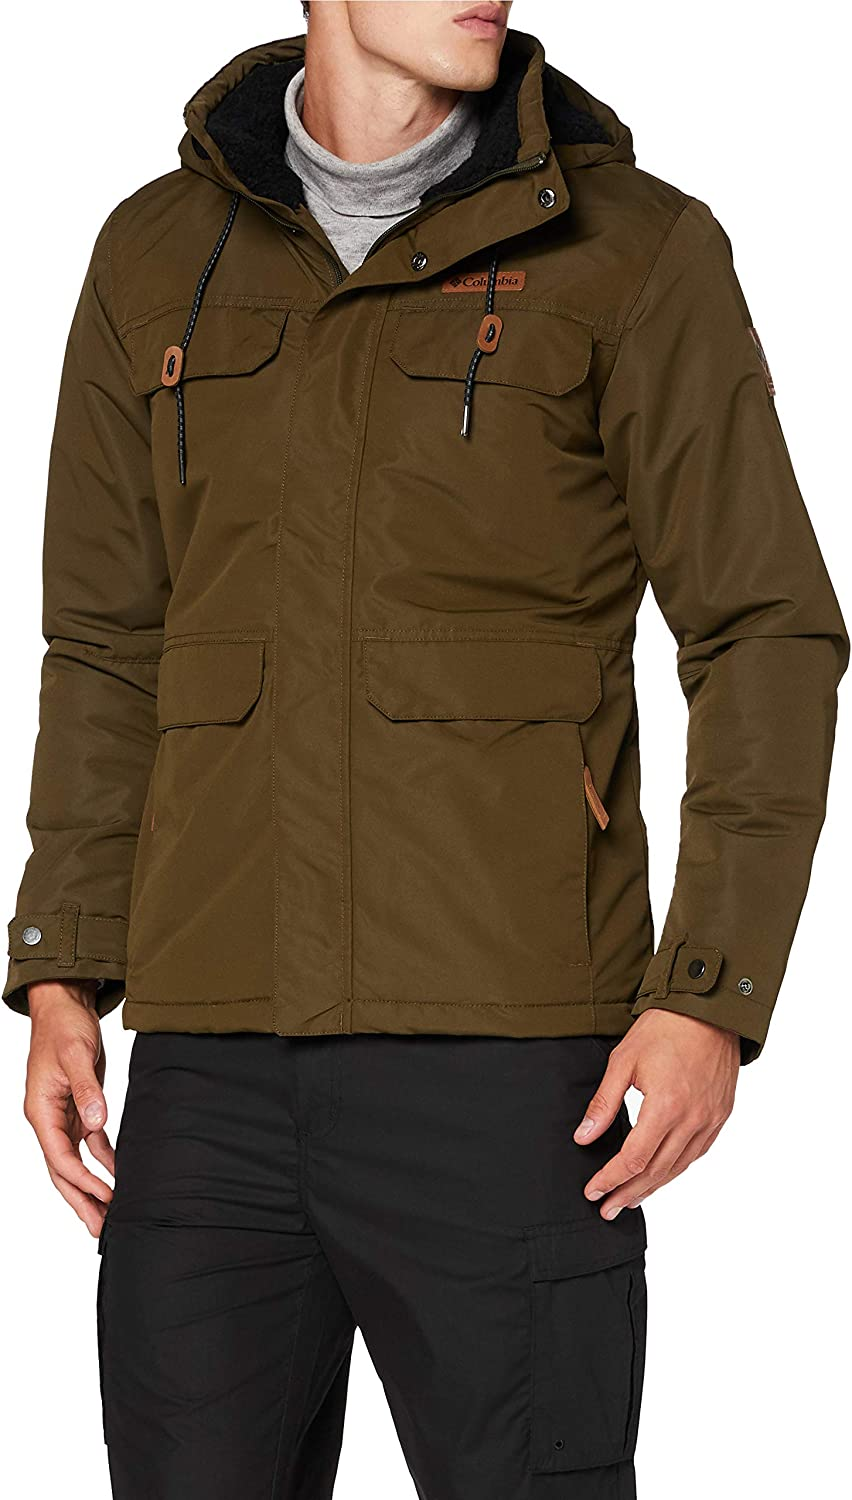 Men's Columbia SOUTH CANYON LINED Jacket-Olive Green Medium